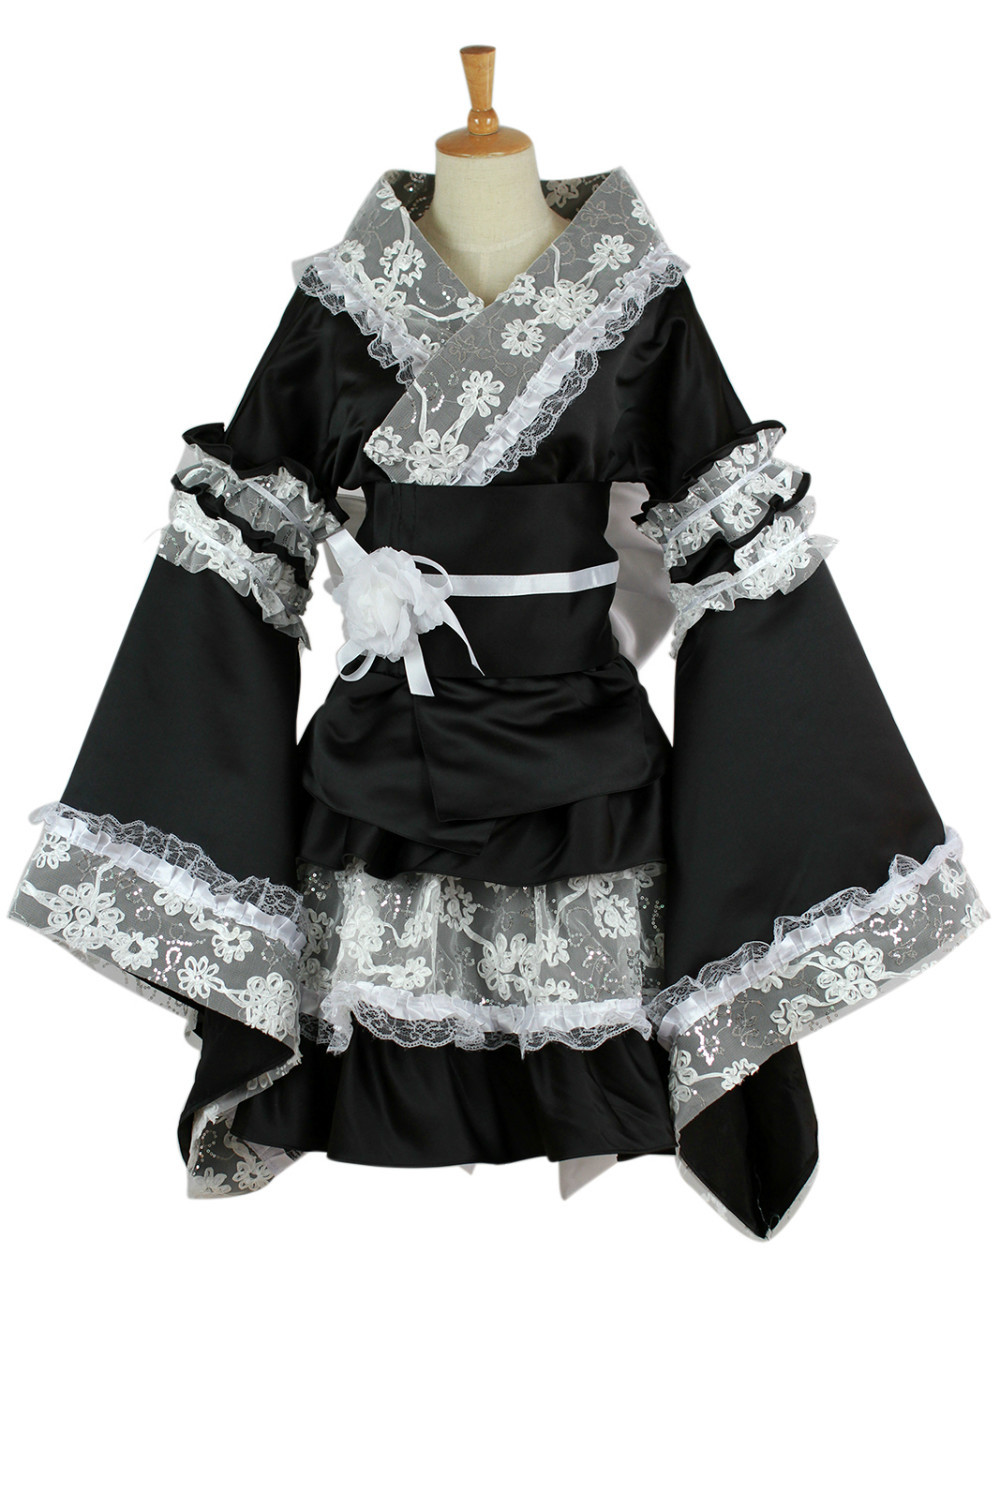 maid cosplay costume for women anime clothes lace kimono